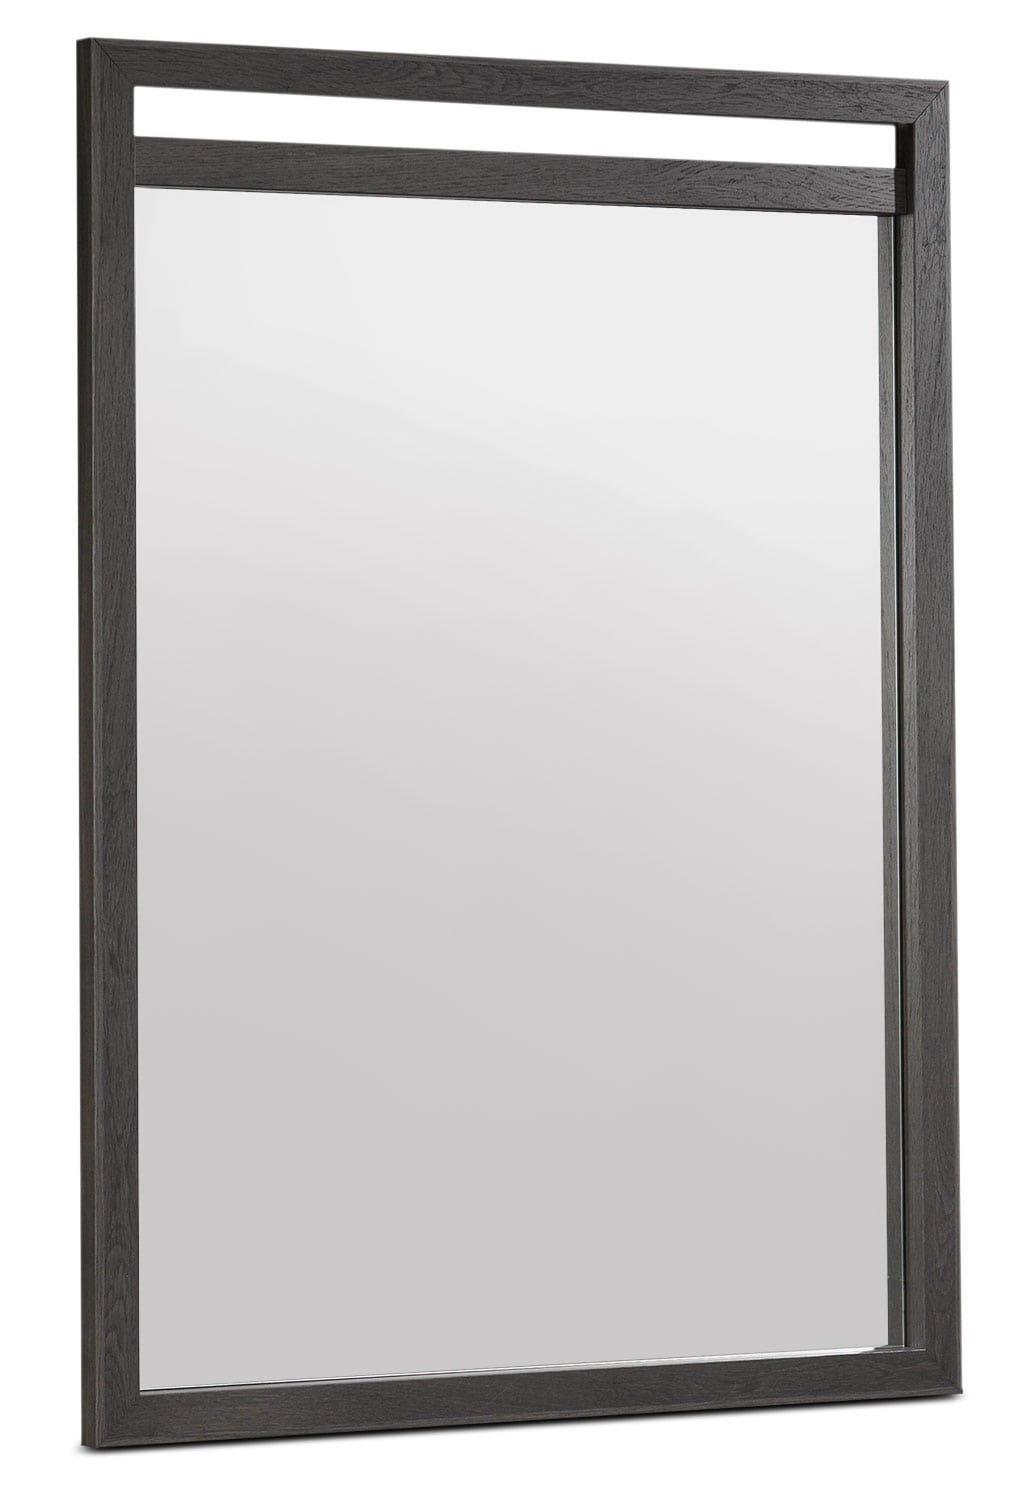 Hudson Mirror - Rustic Brown